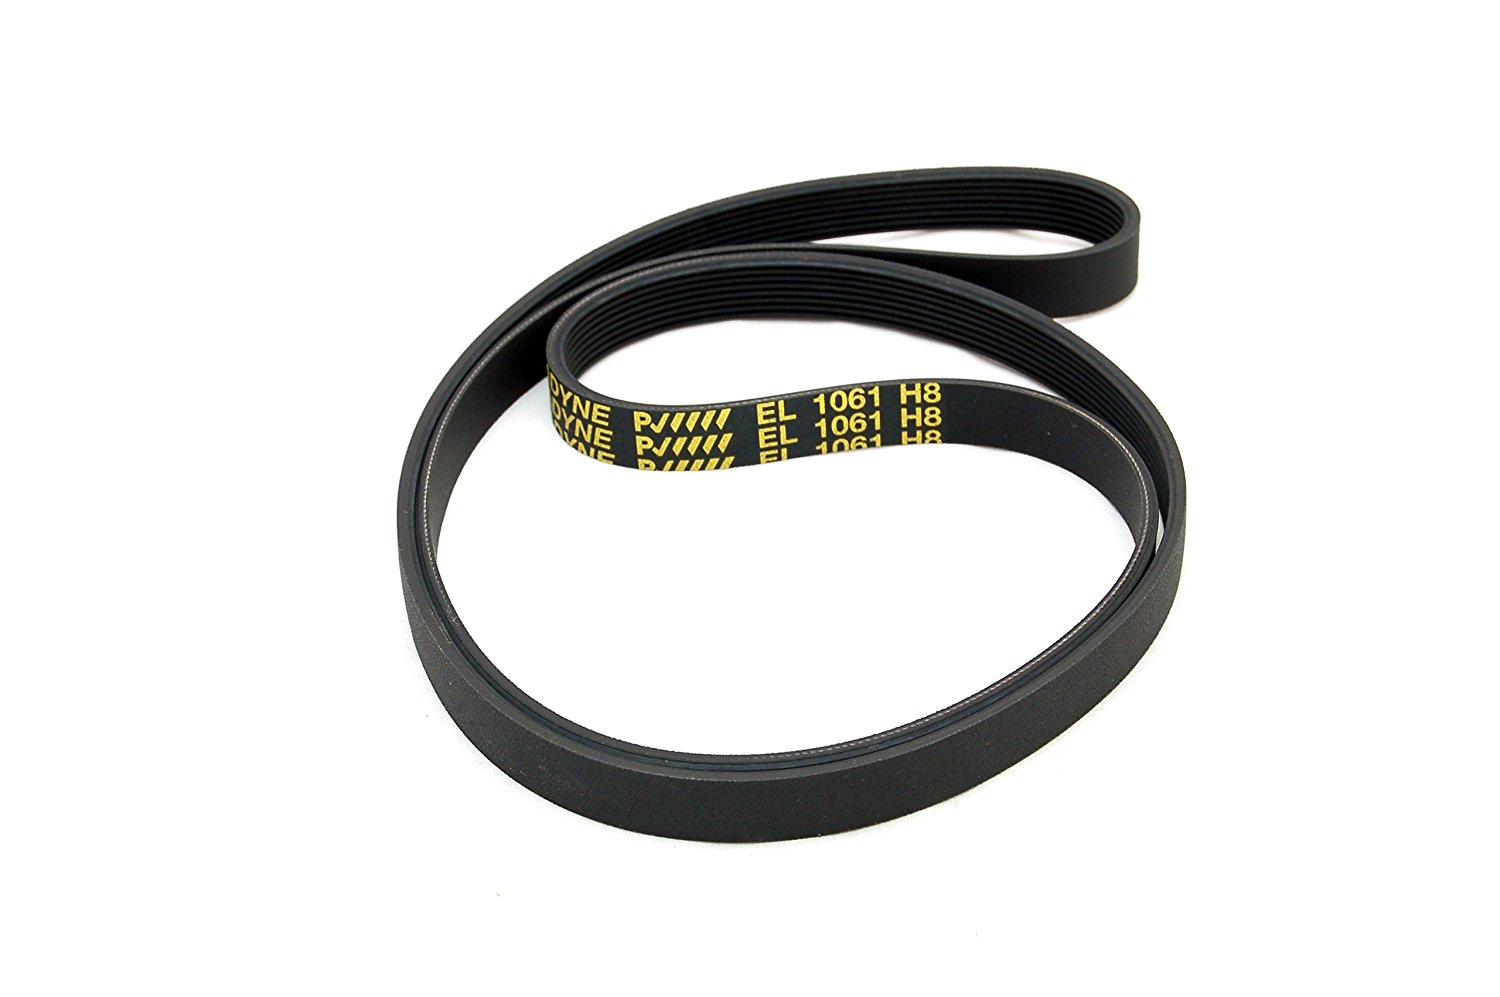 Description of BELT EL 1061 H8